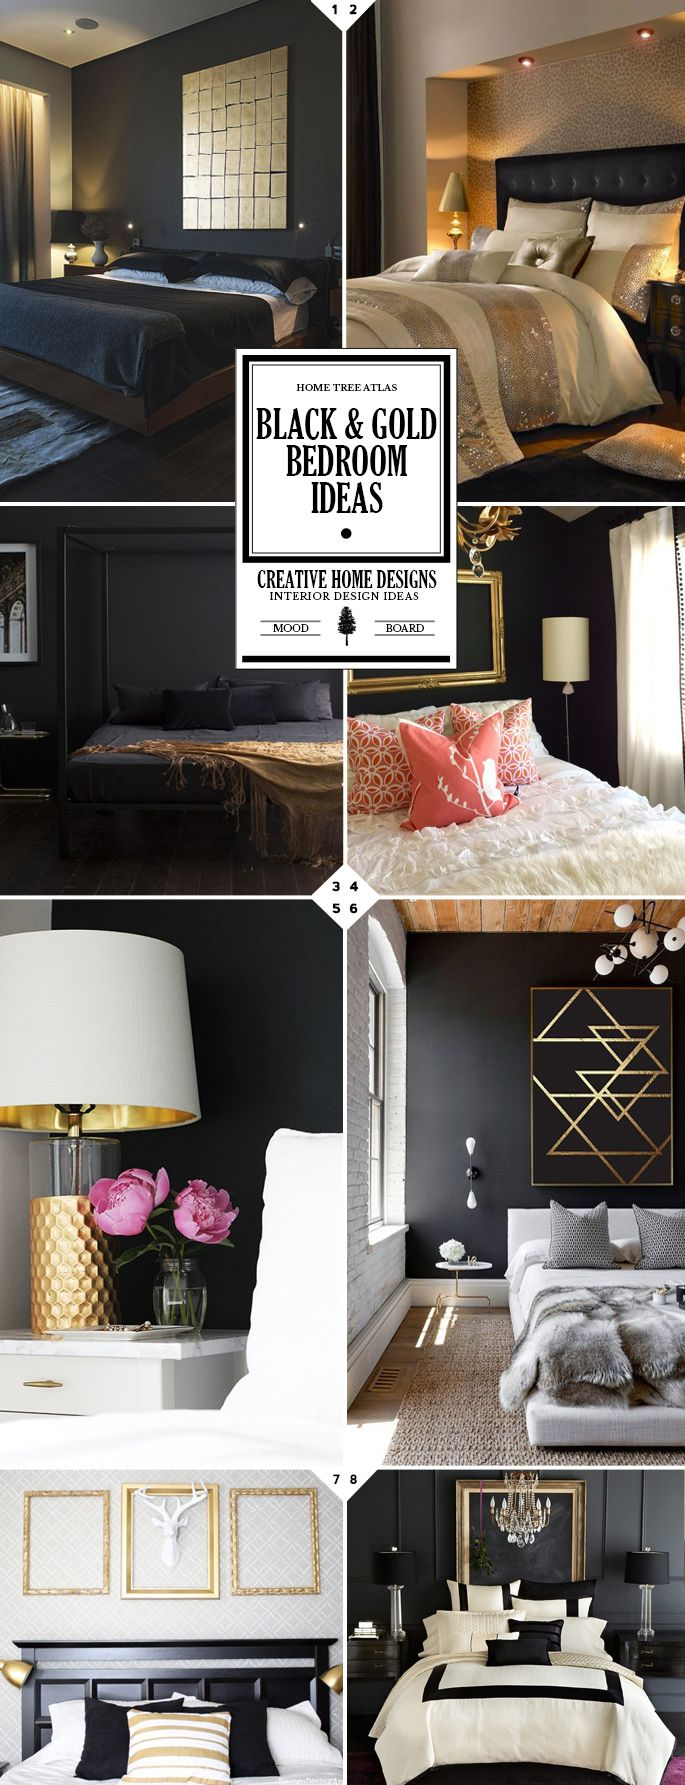 a touch of luxury black and gold bedroom ideas - Black And White Bedroom Decorating Ideas